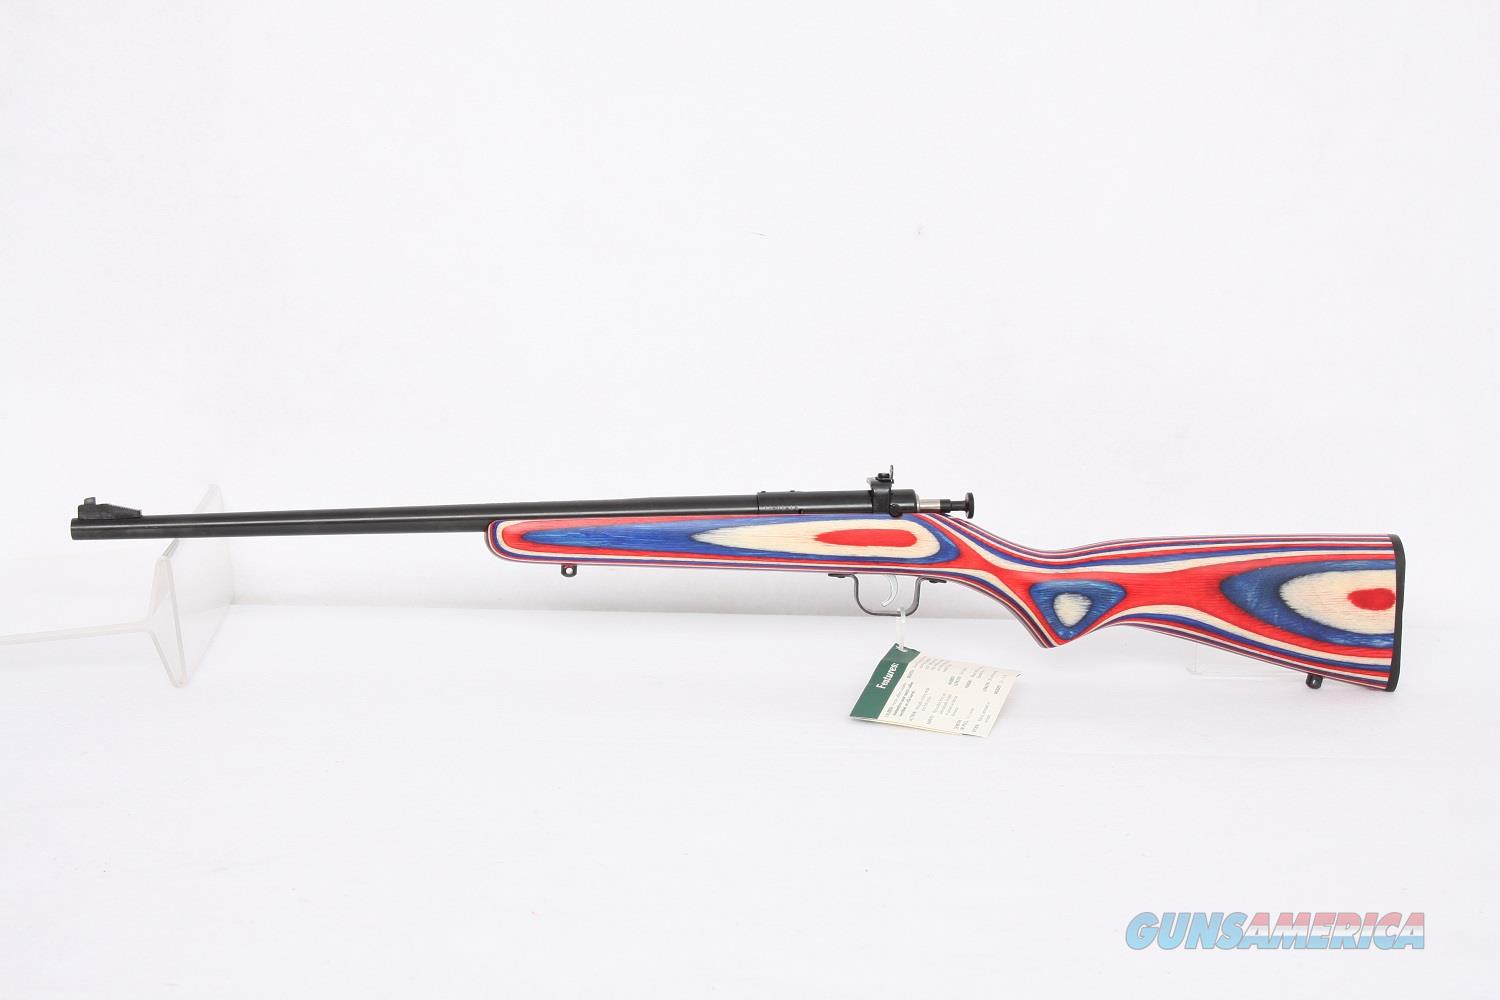 Keystone Crickett  .22Lr Red White Blue Laminate  Guns > Rifles > Crickett-Keystone Rifles